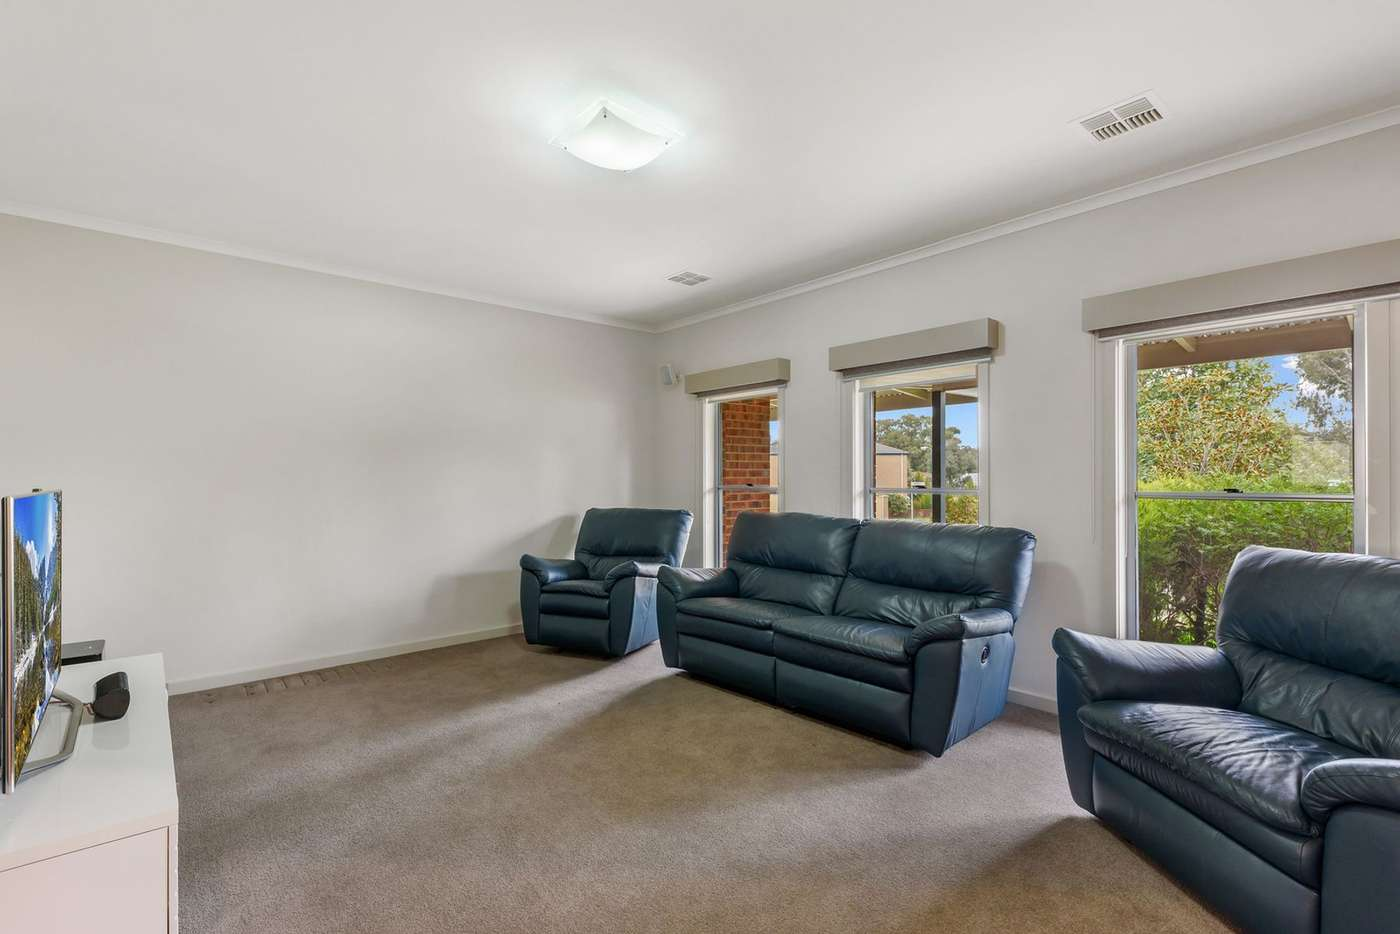 Sixth view of Homely house listing, 5 Ninnes Court, Maiden Gully VIC 3551